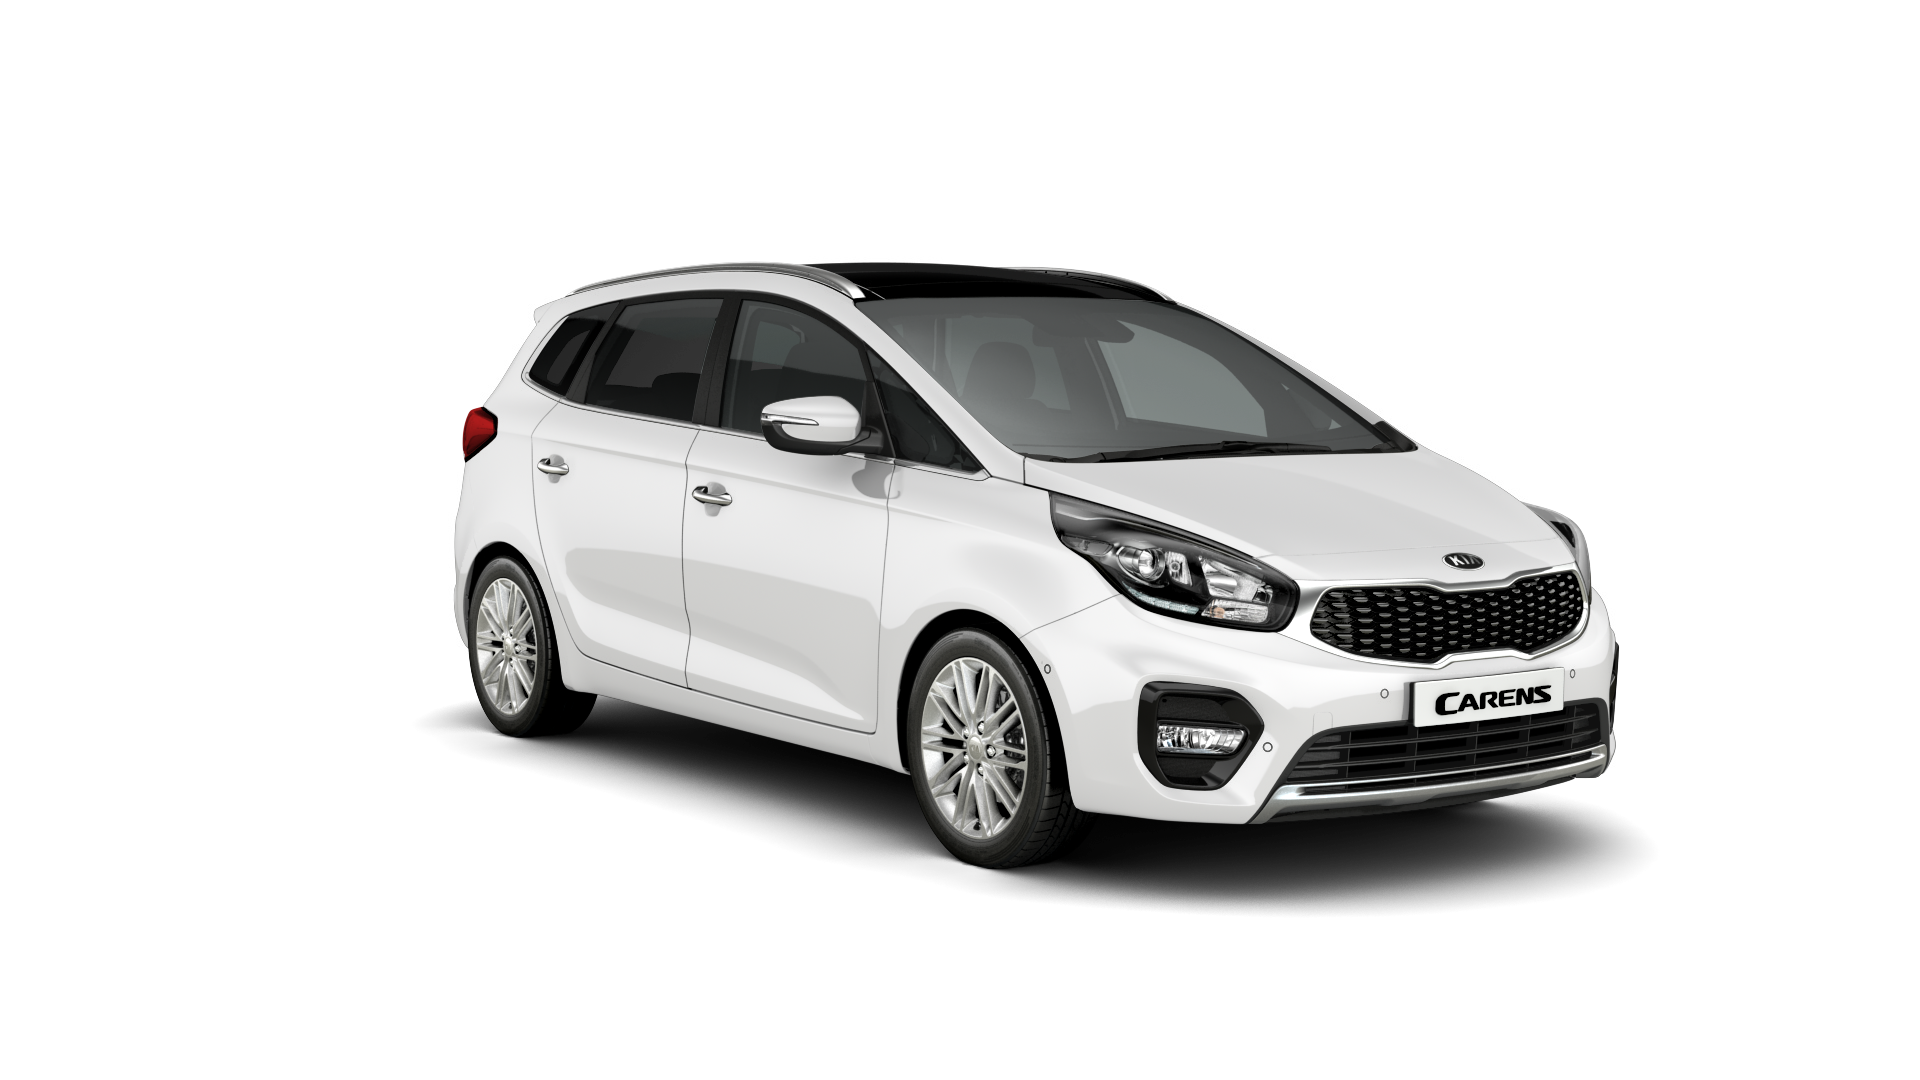 Kia Carens Clear White